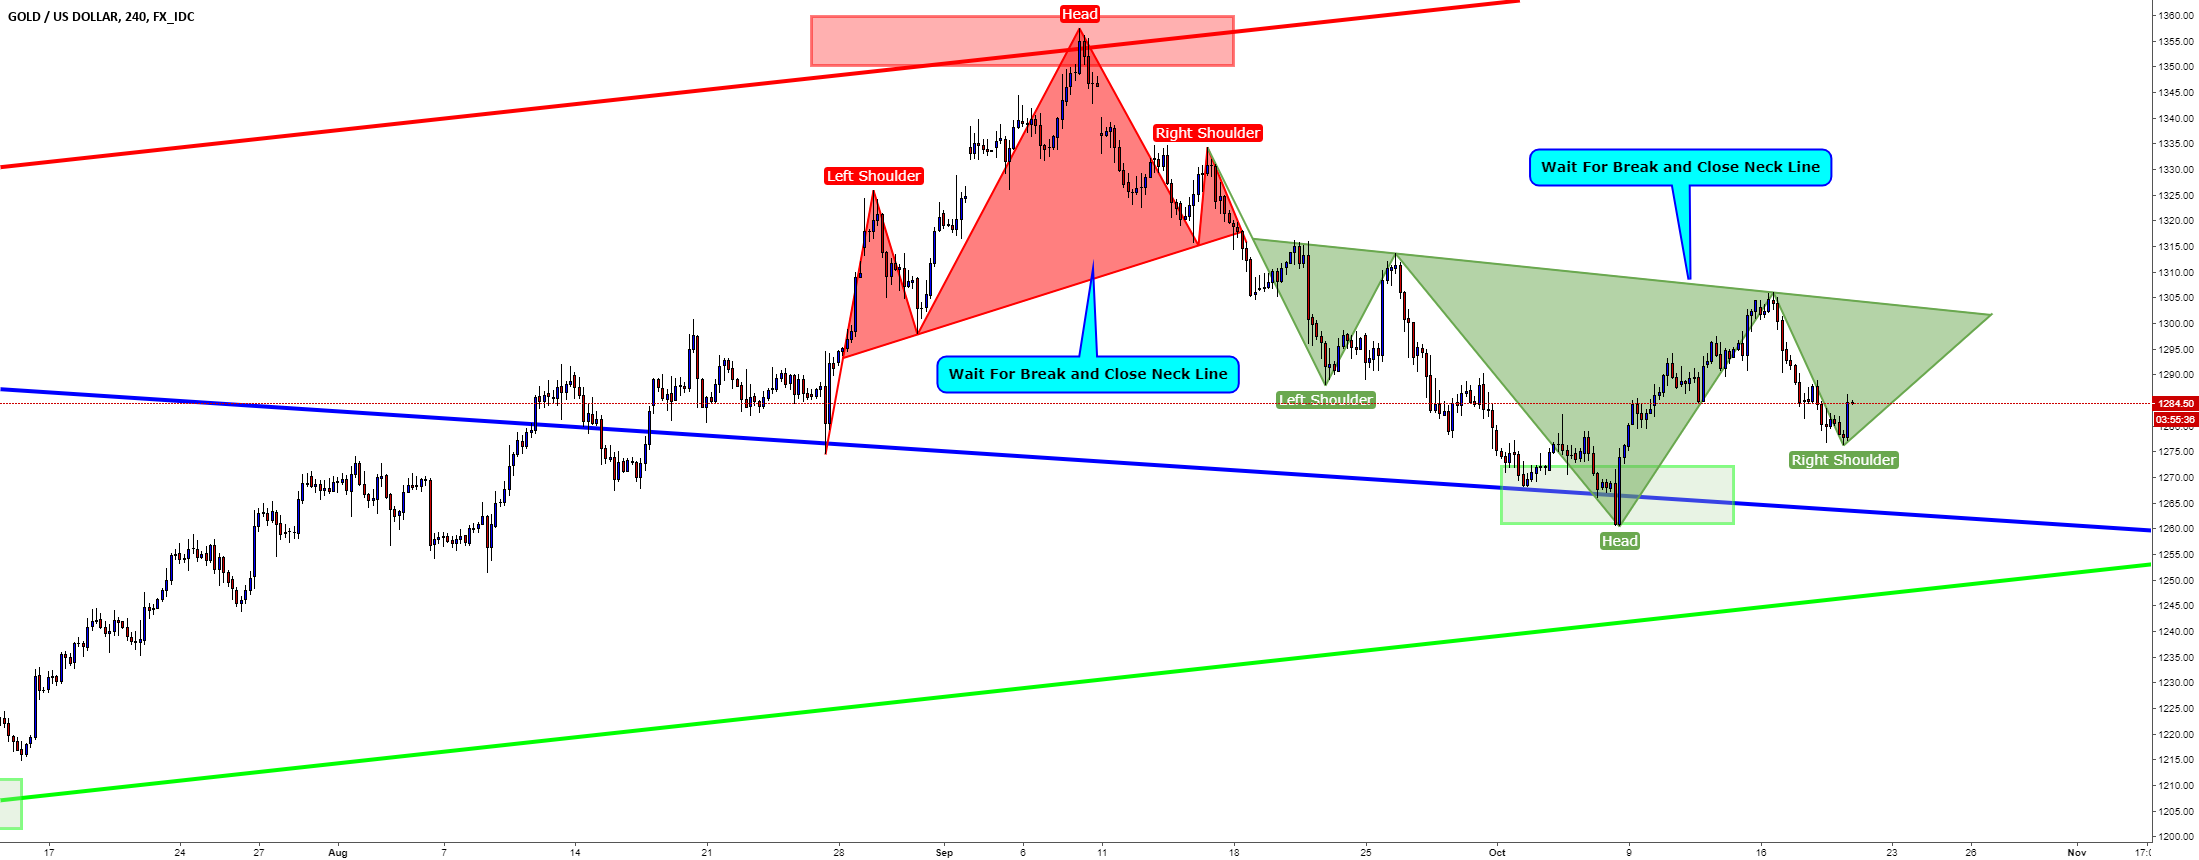 XAUUSD / H4 / Head and Shoulders